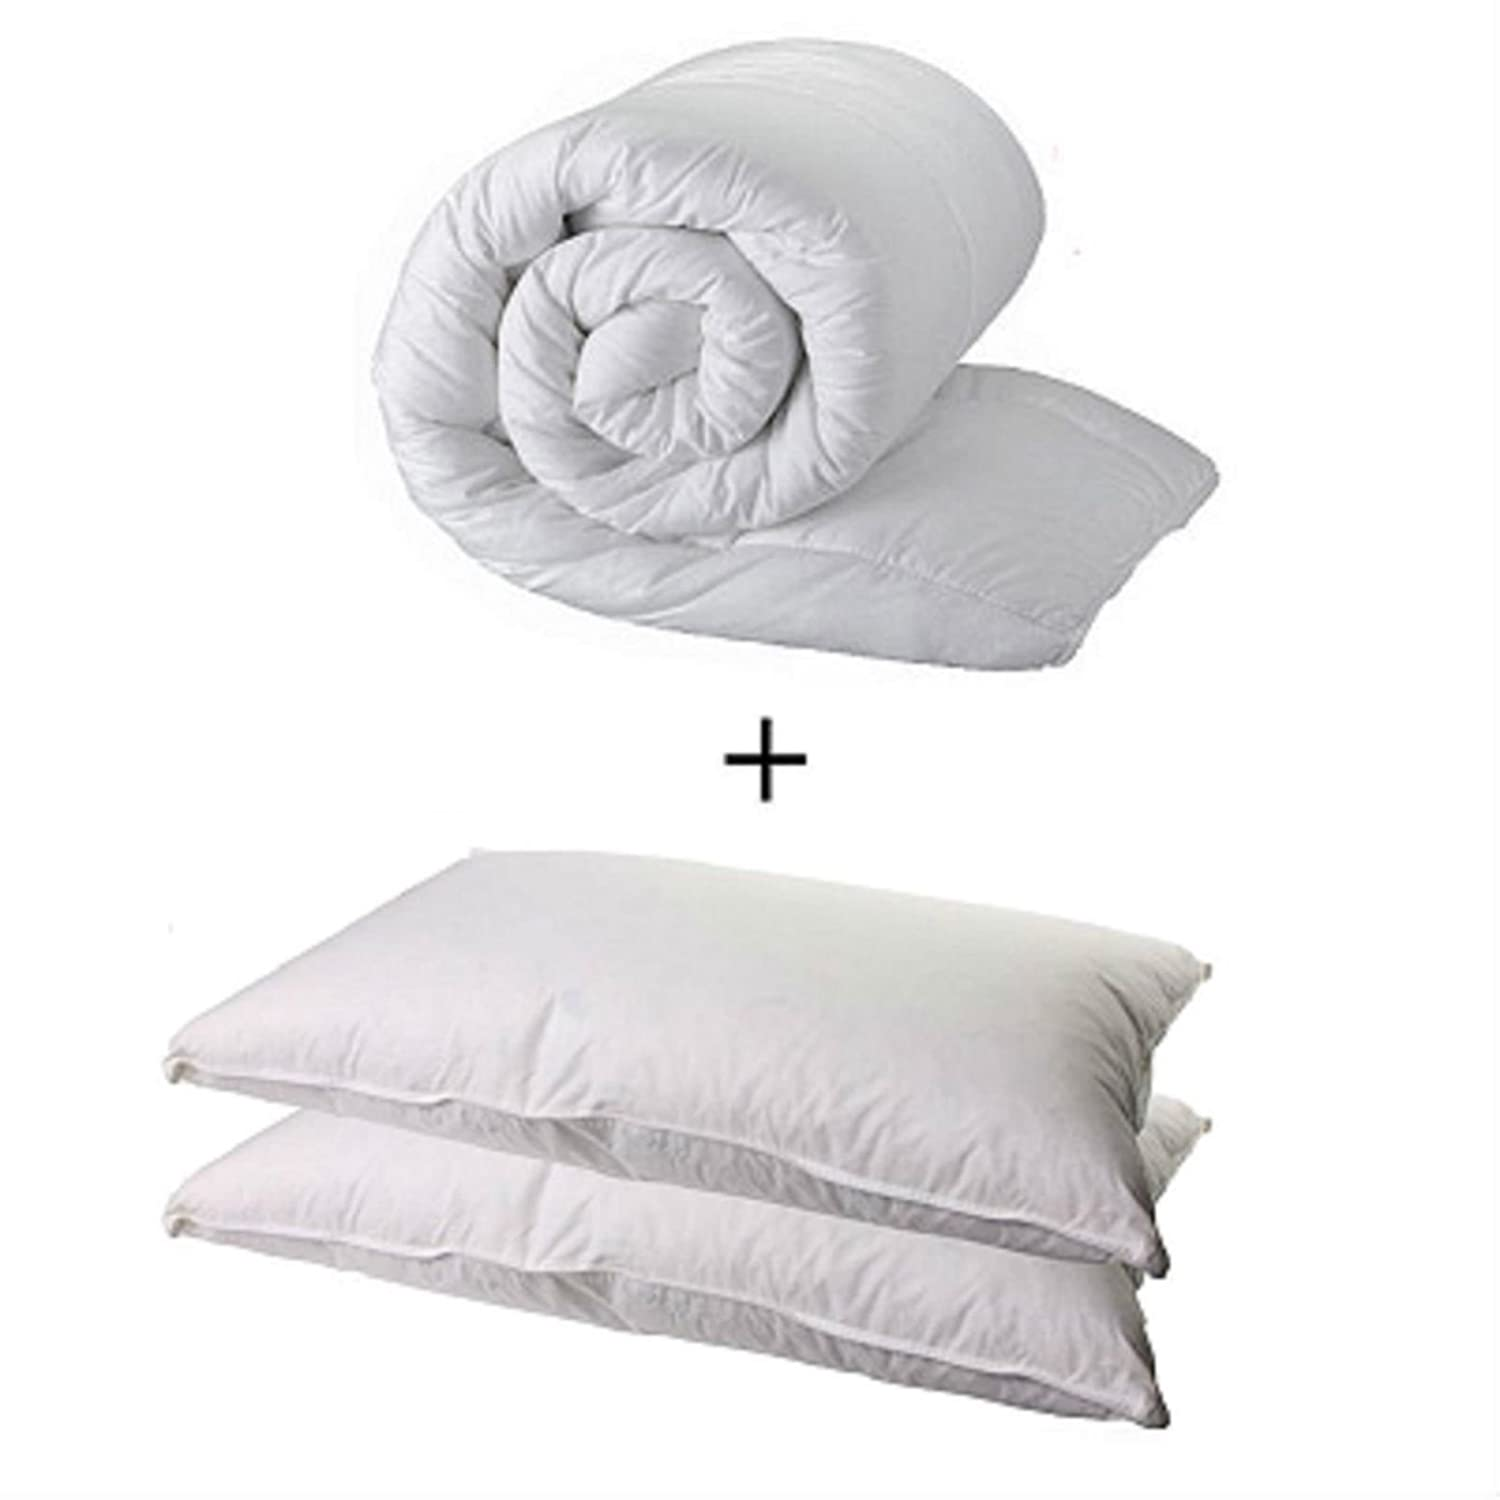 DOUBLE DUVET & 2 DELUXE PILLOWS - DOUBLE 13.5 TOG QUILT & 2 SUPERFIRM PILLOWS Uk Factory